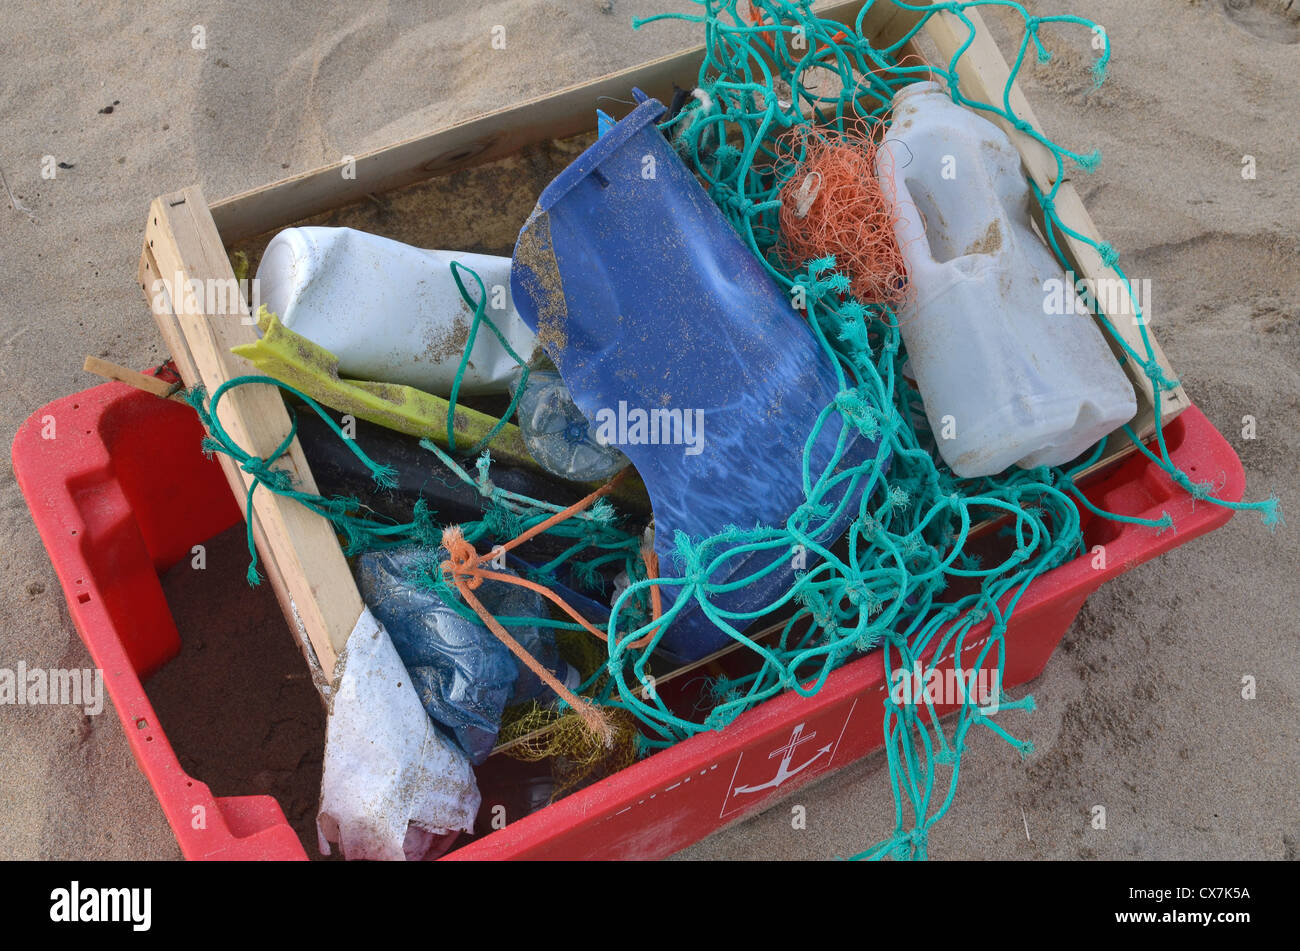 Collection of assorted flotsam / shoreline rubbish on sandy beach. Plastic waste, war on plastic concept. Plastic - Stock Image